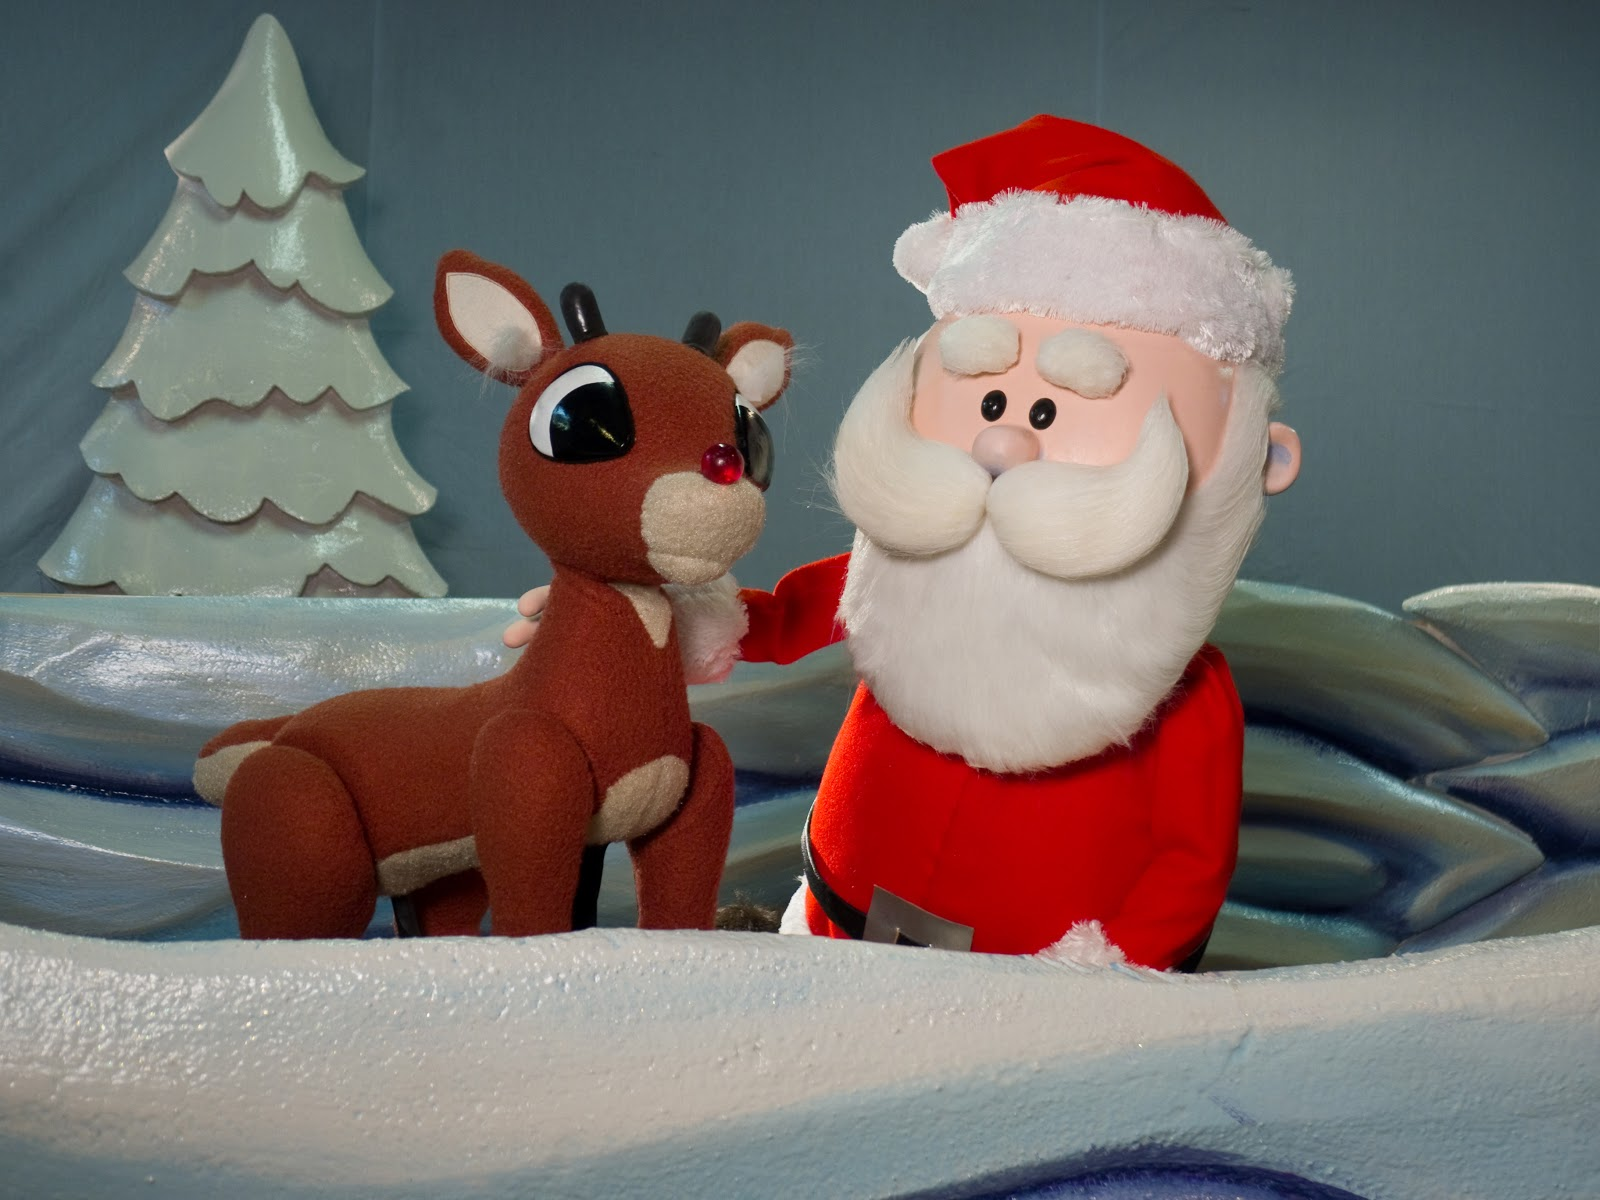 Rudolph The Red Nosed Reindeer Center for Puppetry Arts - photo#25